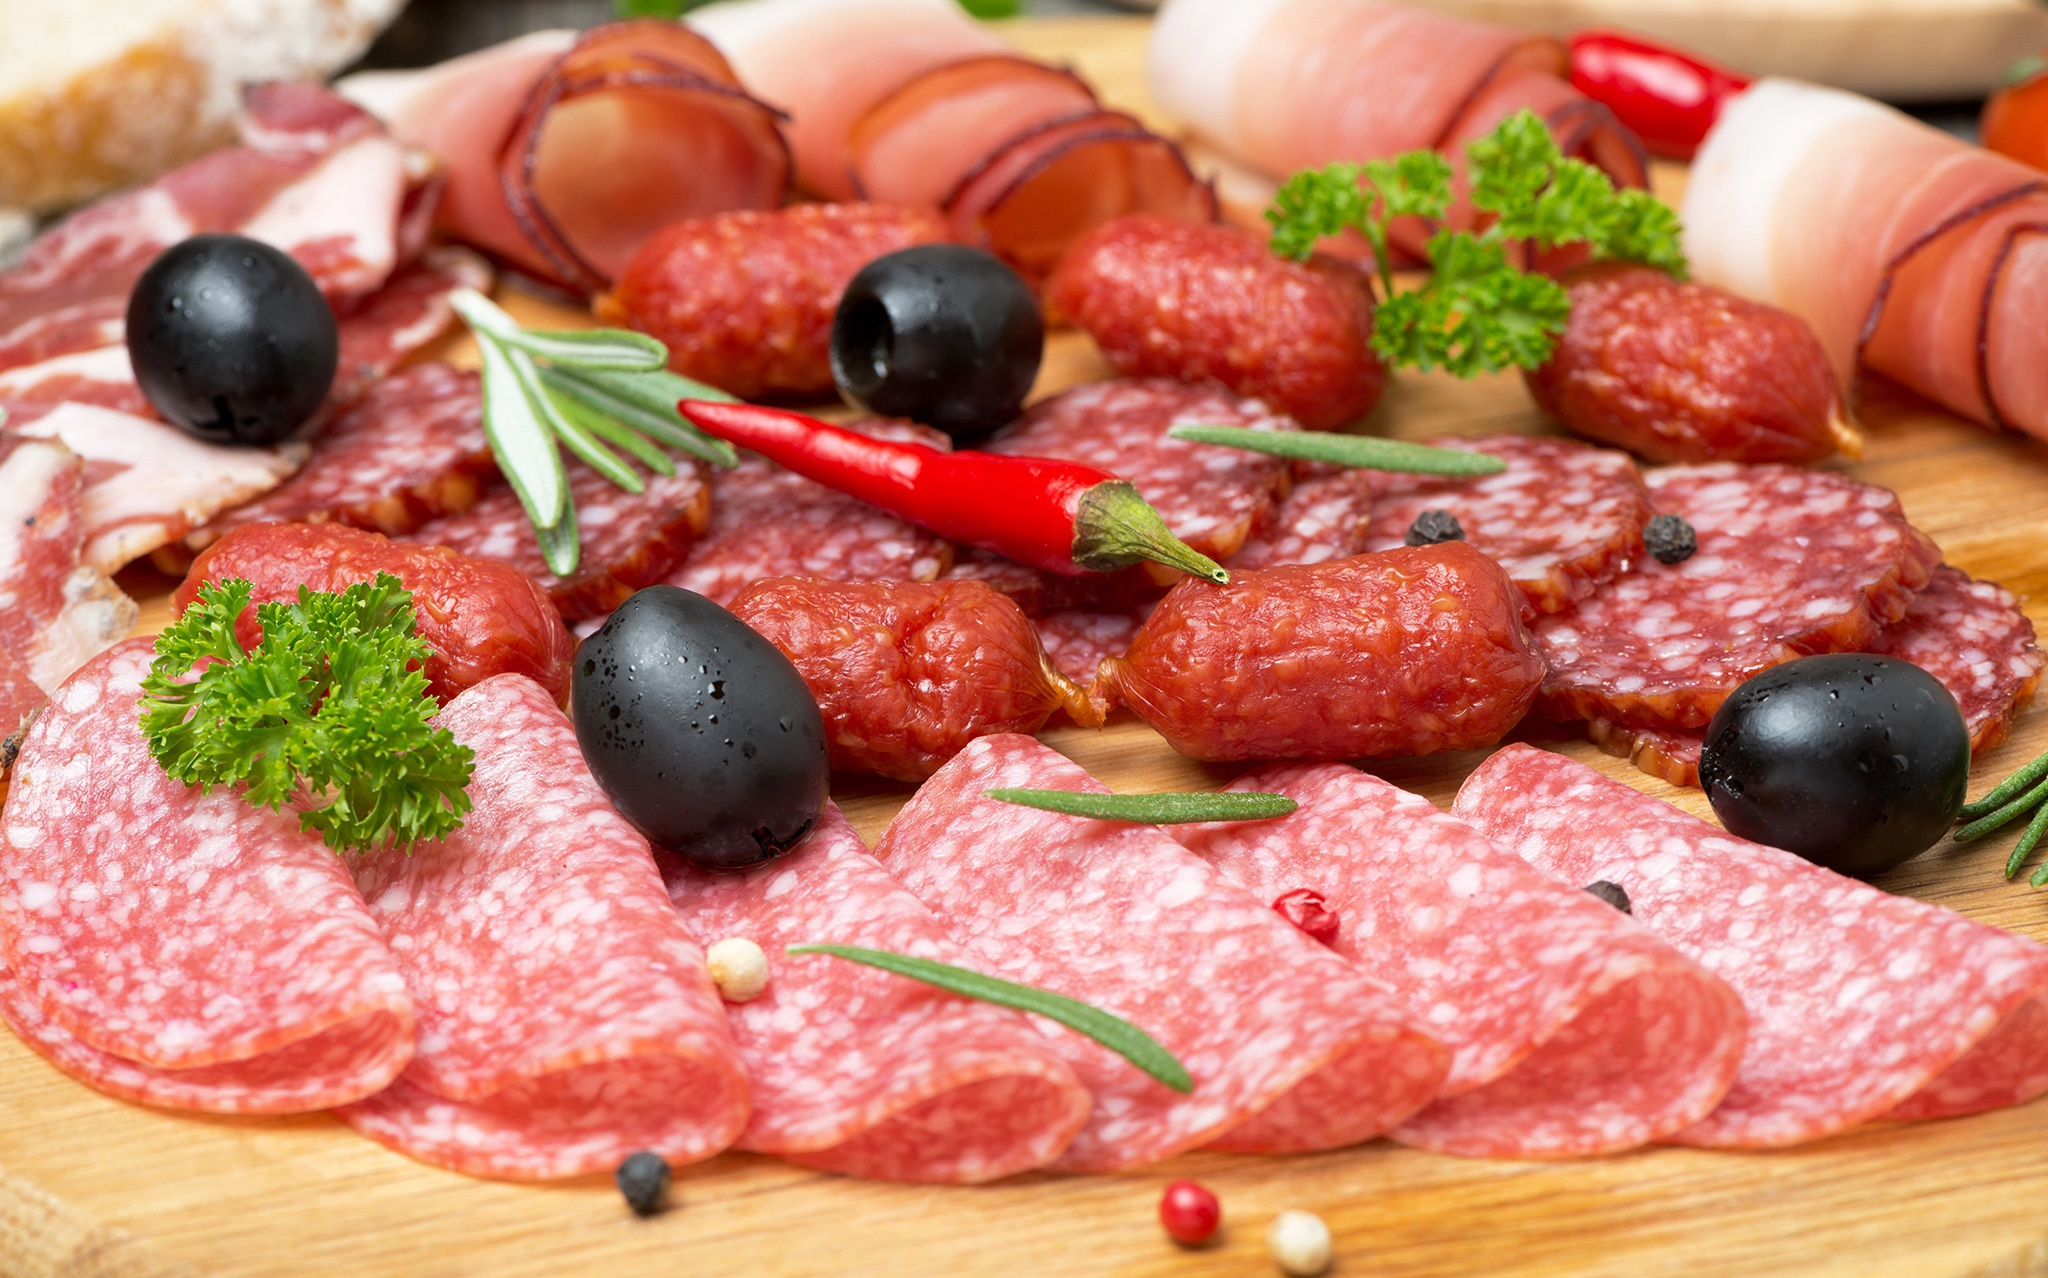 General 2048x1278 colorful salami food sausage olives meat animals flesh muscles pigs death parsley Black pepper (Spice) chilli peppers rosemary cutting board